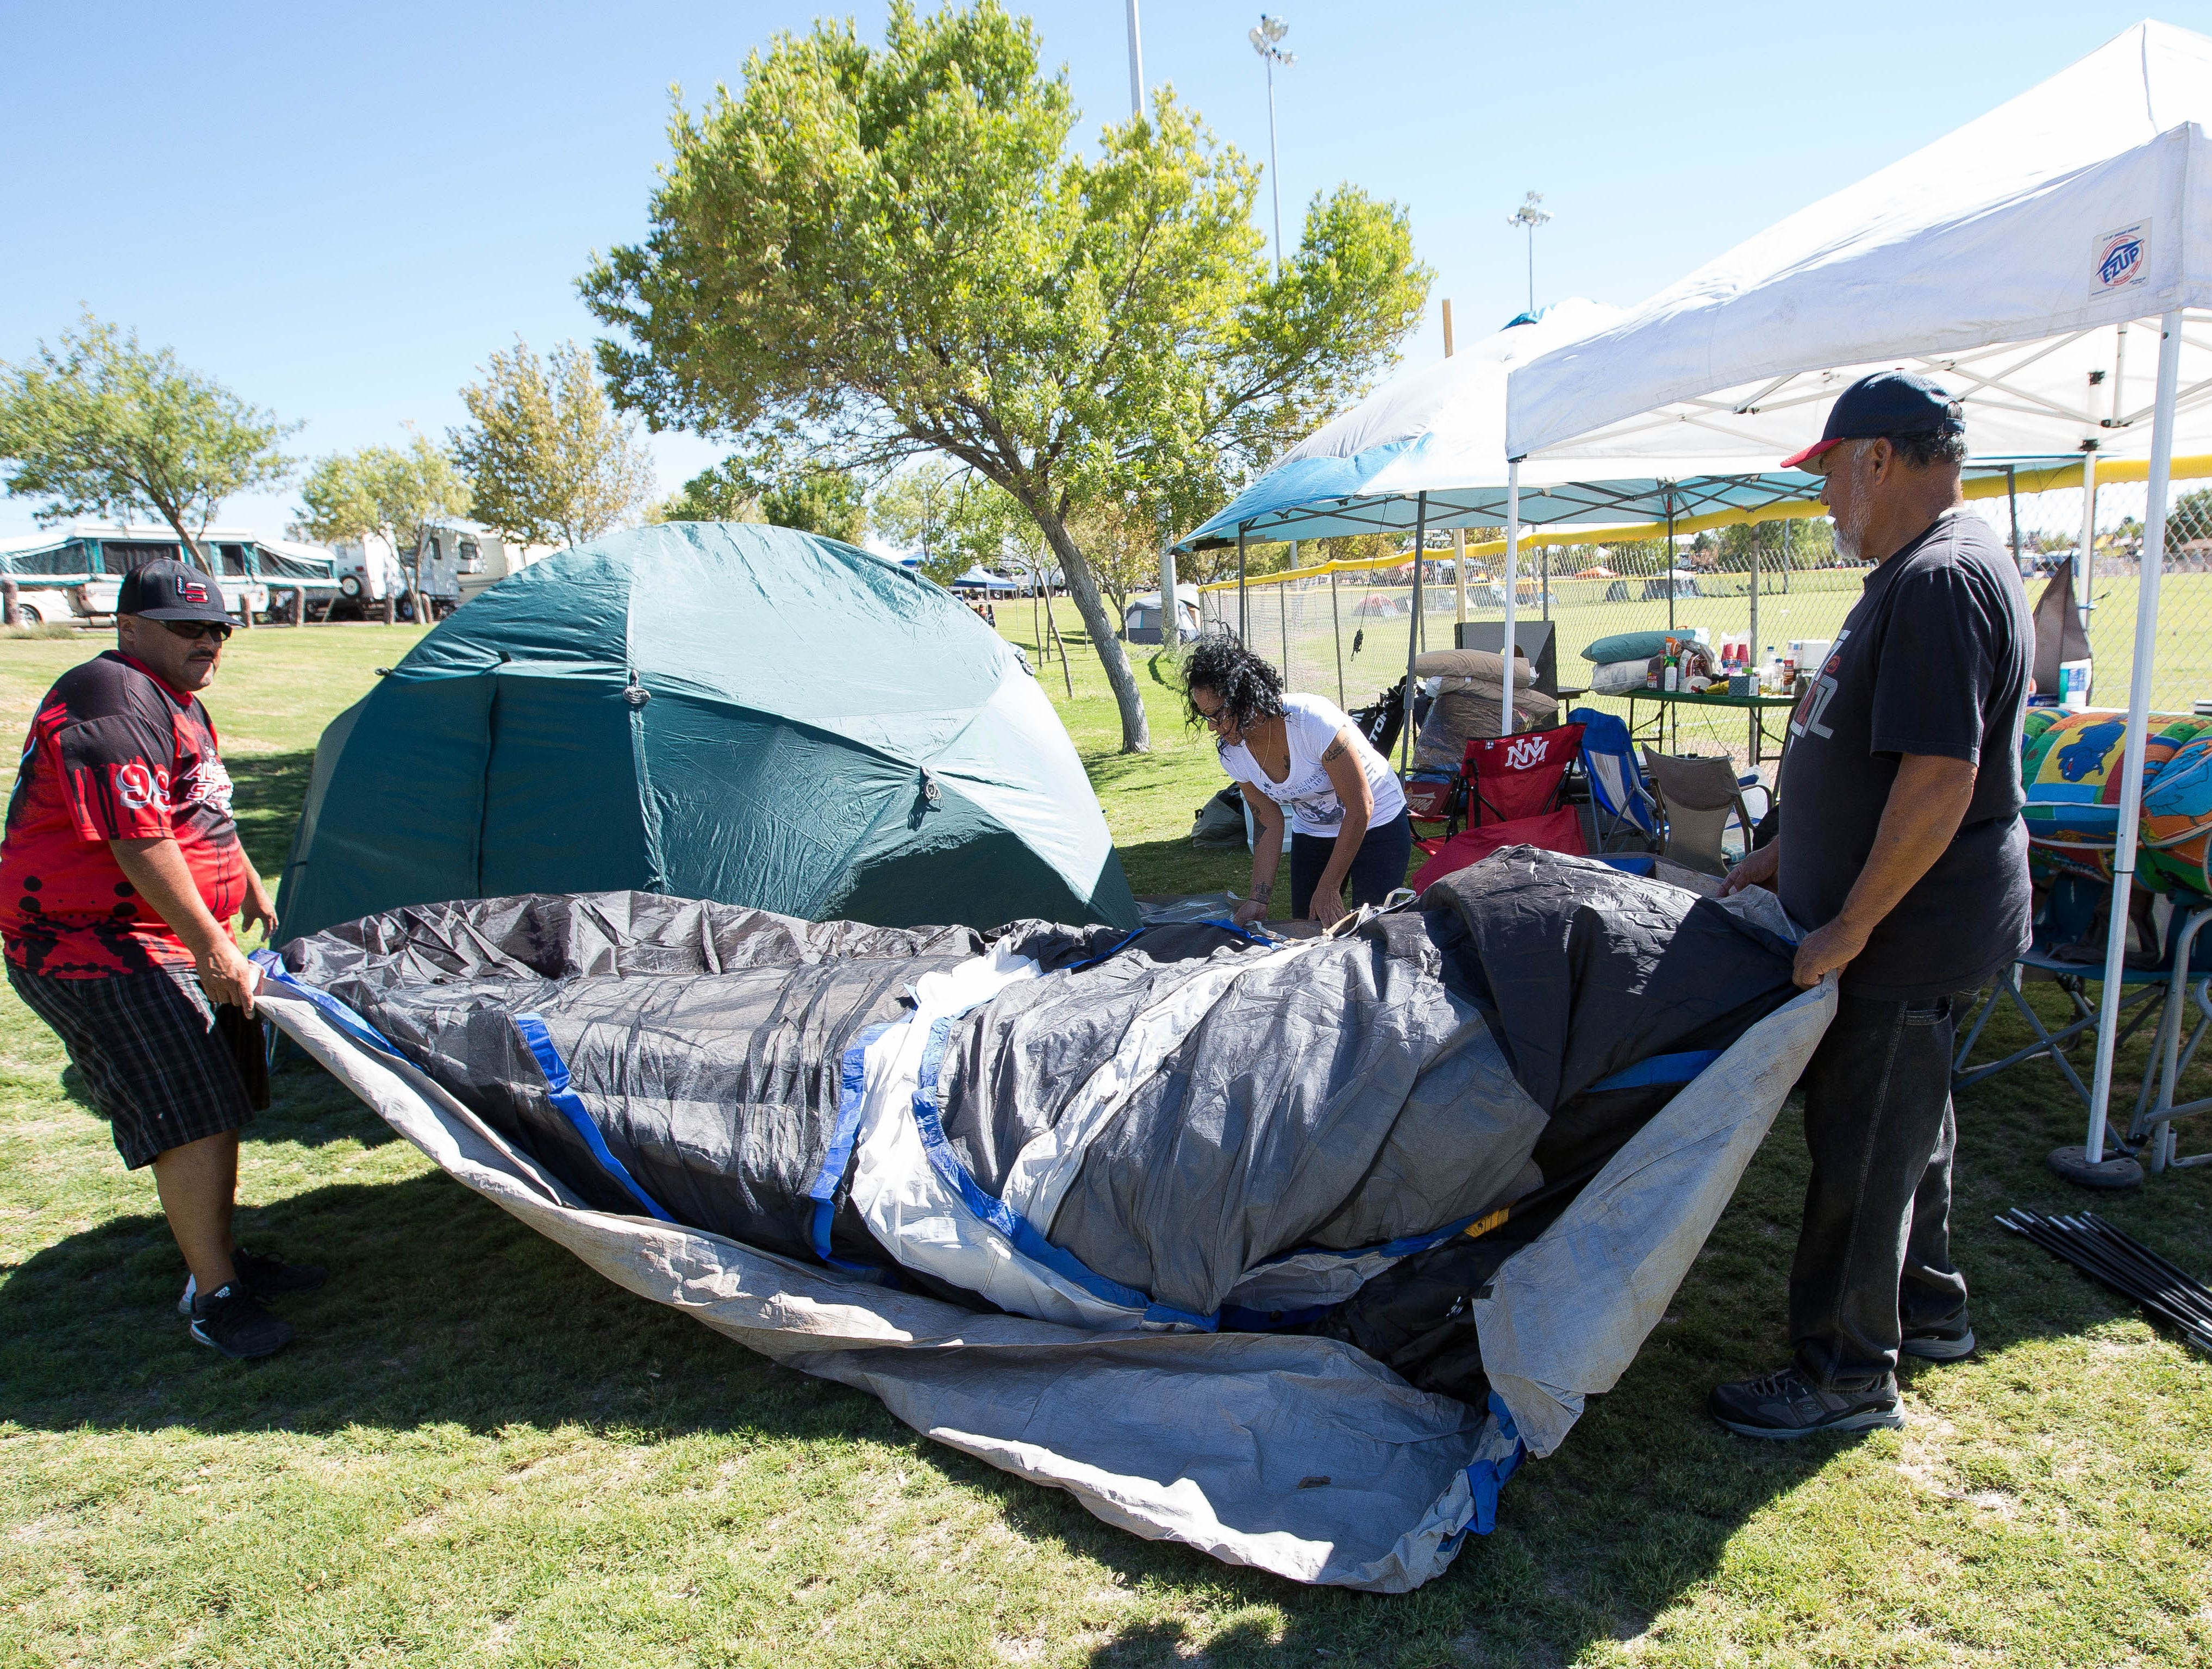 Ivan Soto, left, Maria Carrillo, center, and Chelo Soto, right, from Albuquerque, set up tents for their softball team La Raza Friday Oct. 5, 2018 at Maag Park. More than 7,000 softball players are expected for this weekend's round-the-clock tournament.